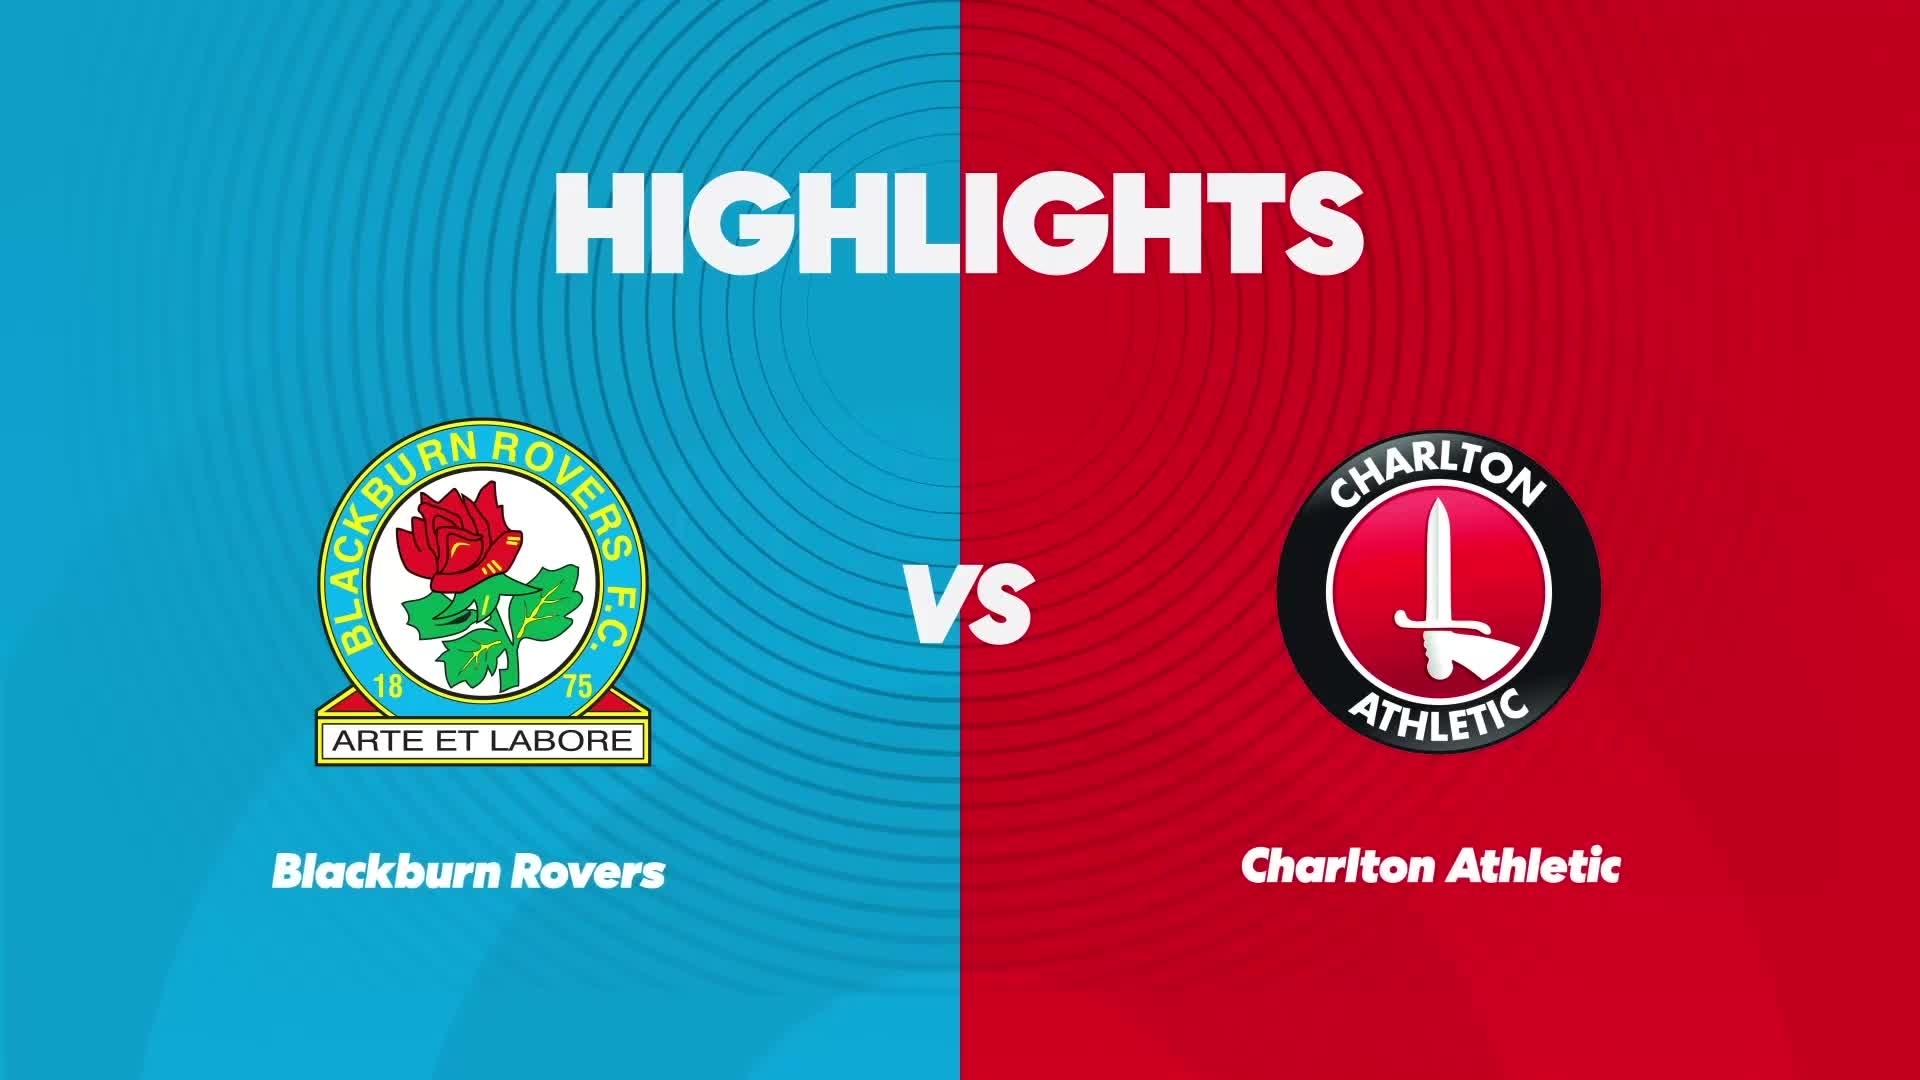 CHARLTON WOMEN | Blackburn Rovers 0 Charlton Athletic Women 1 (Sept 2020)